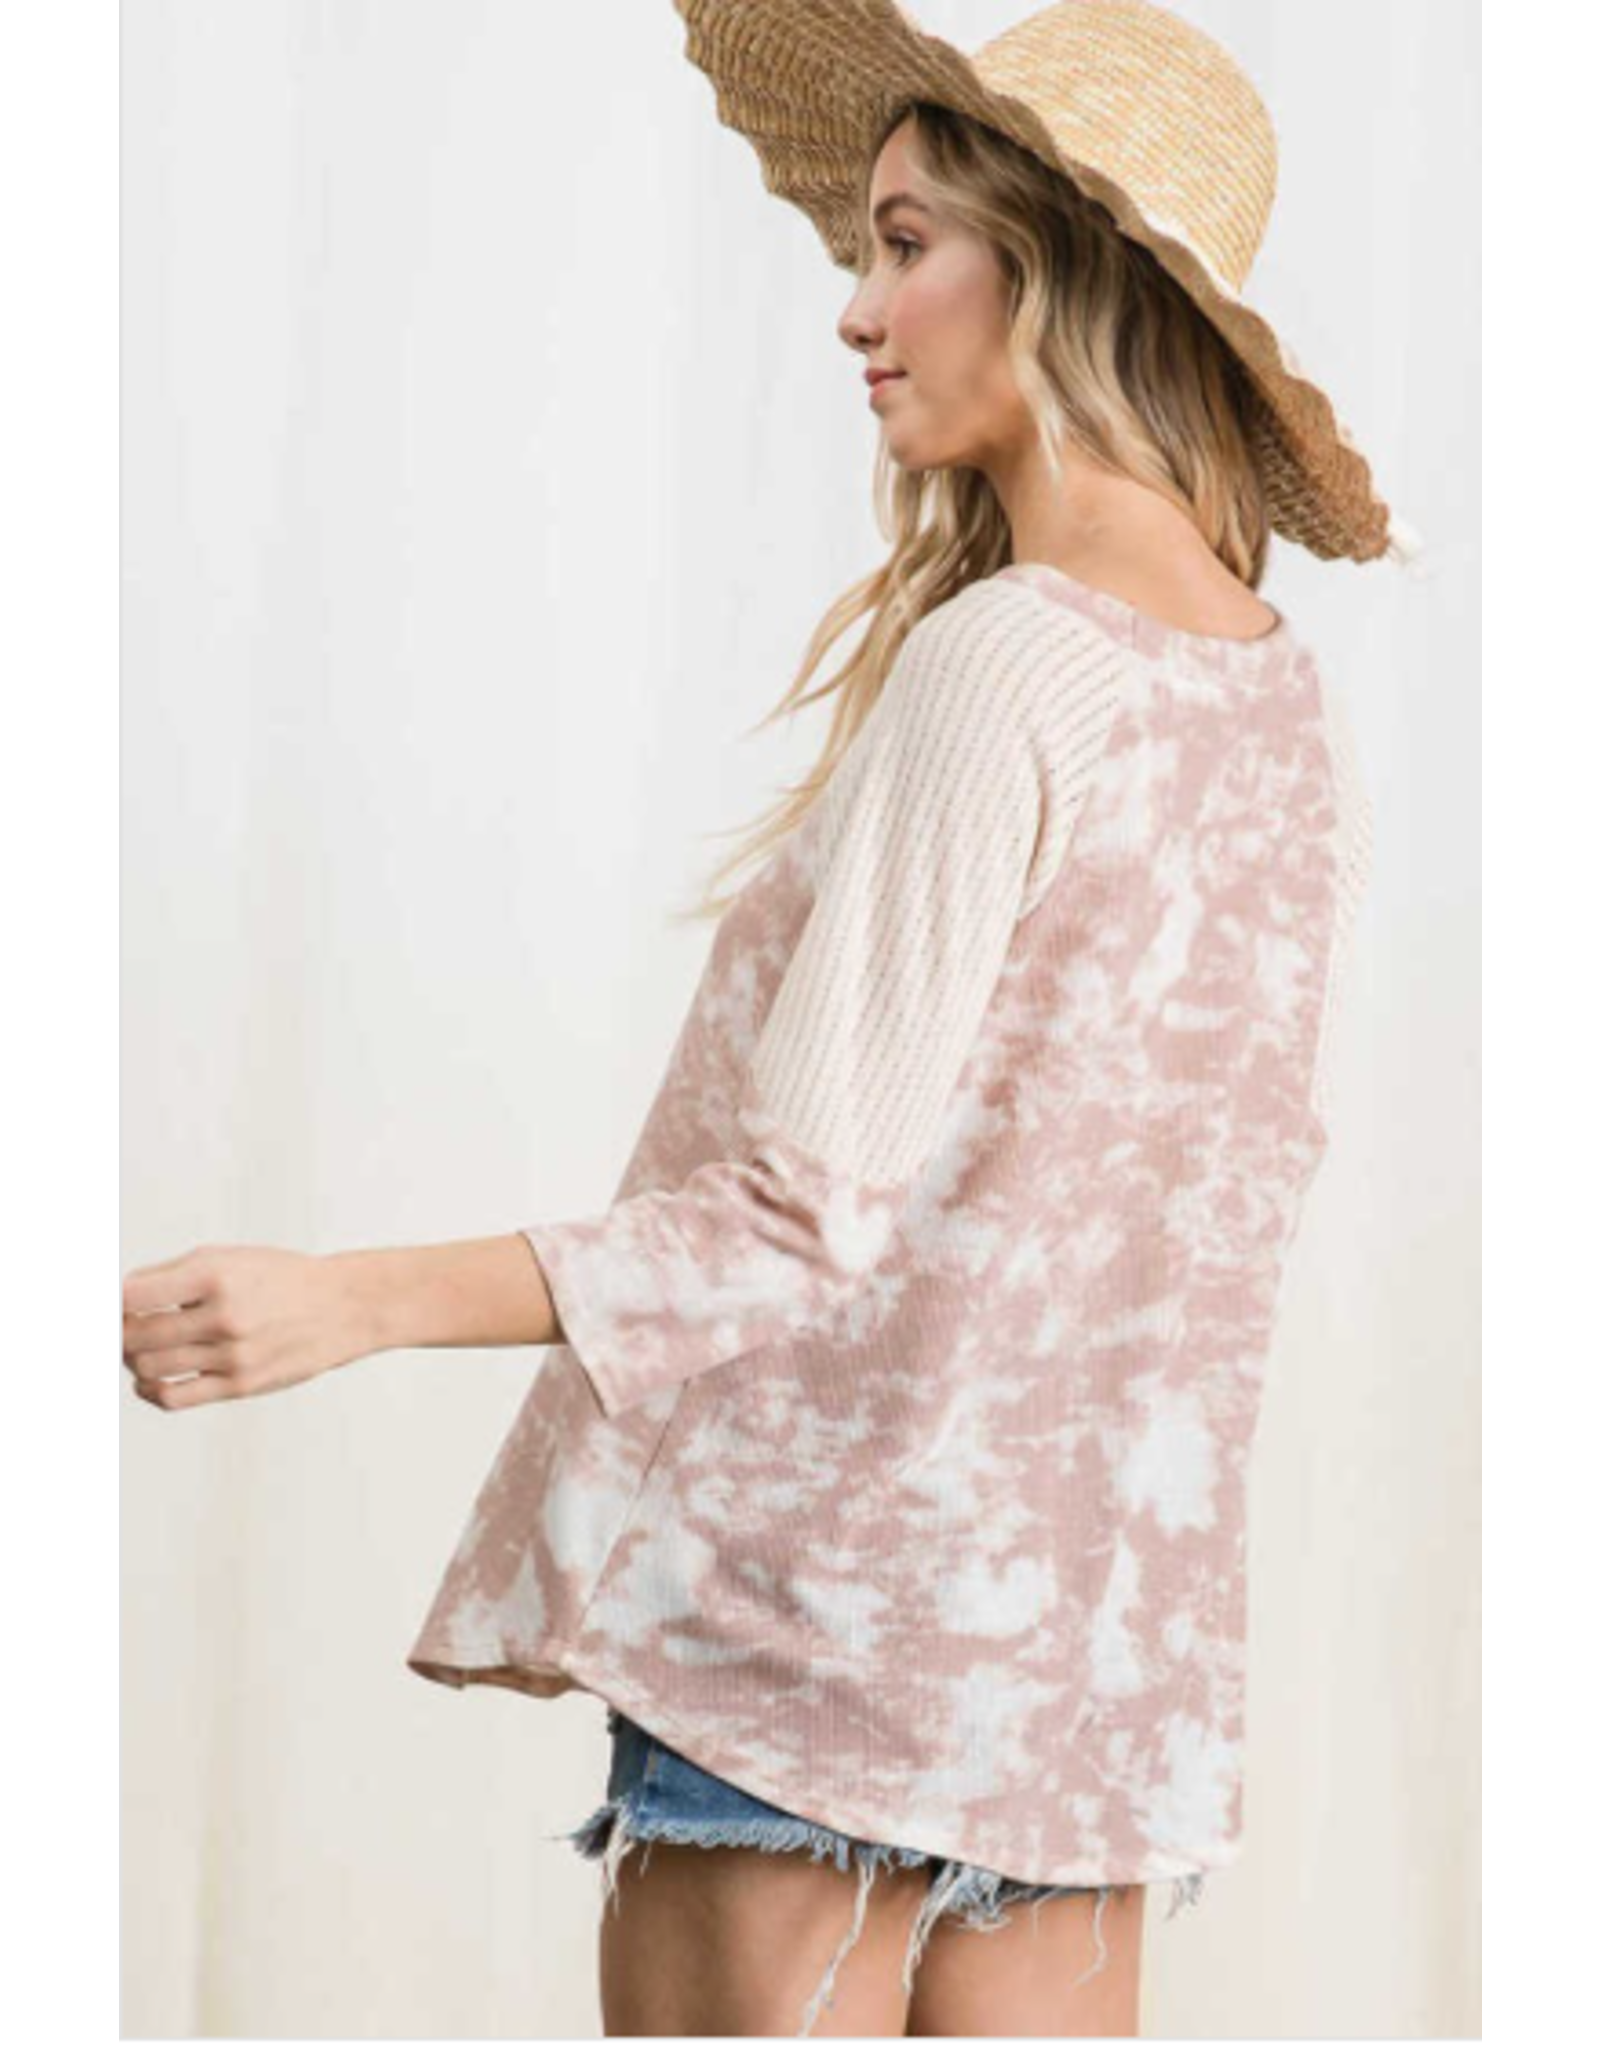 Clover - Tie dye top with contrast sleeves